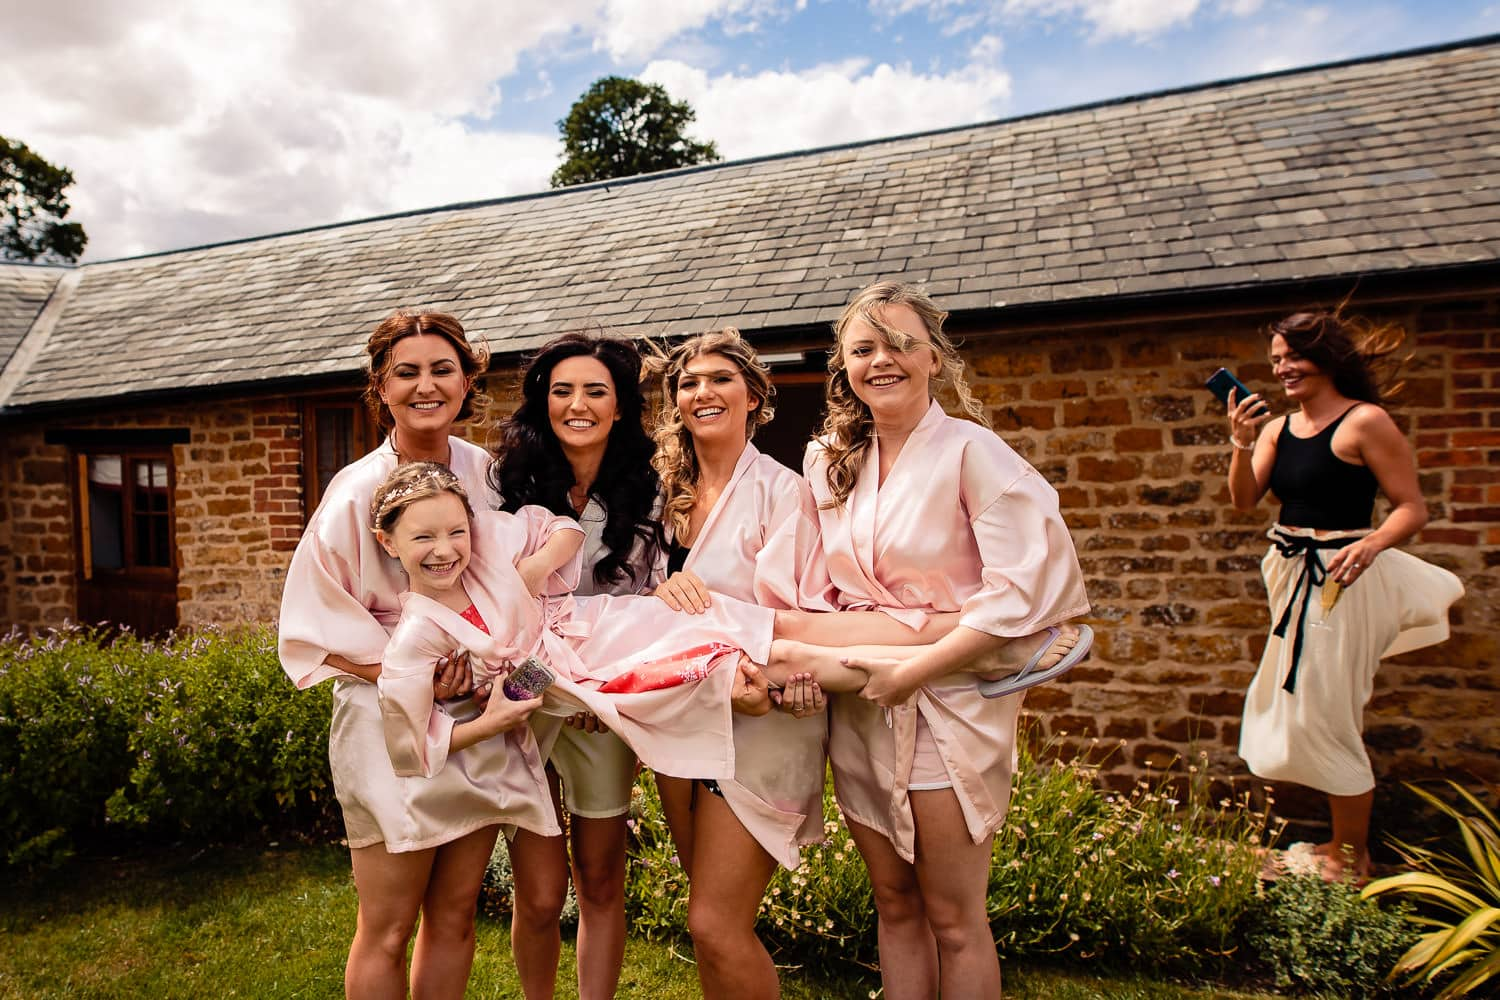 The Granary at Fawsley Wedding bridal party have fun in the courtyard